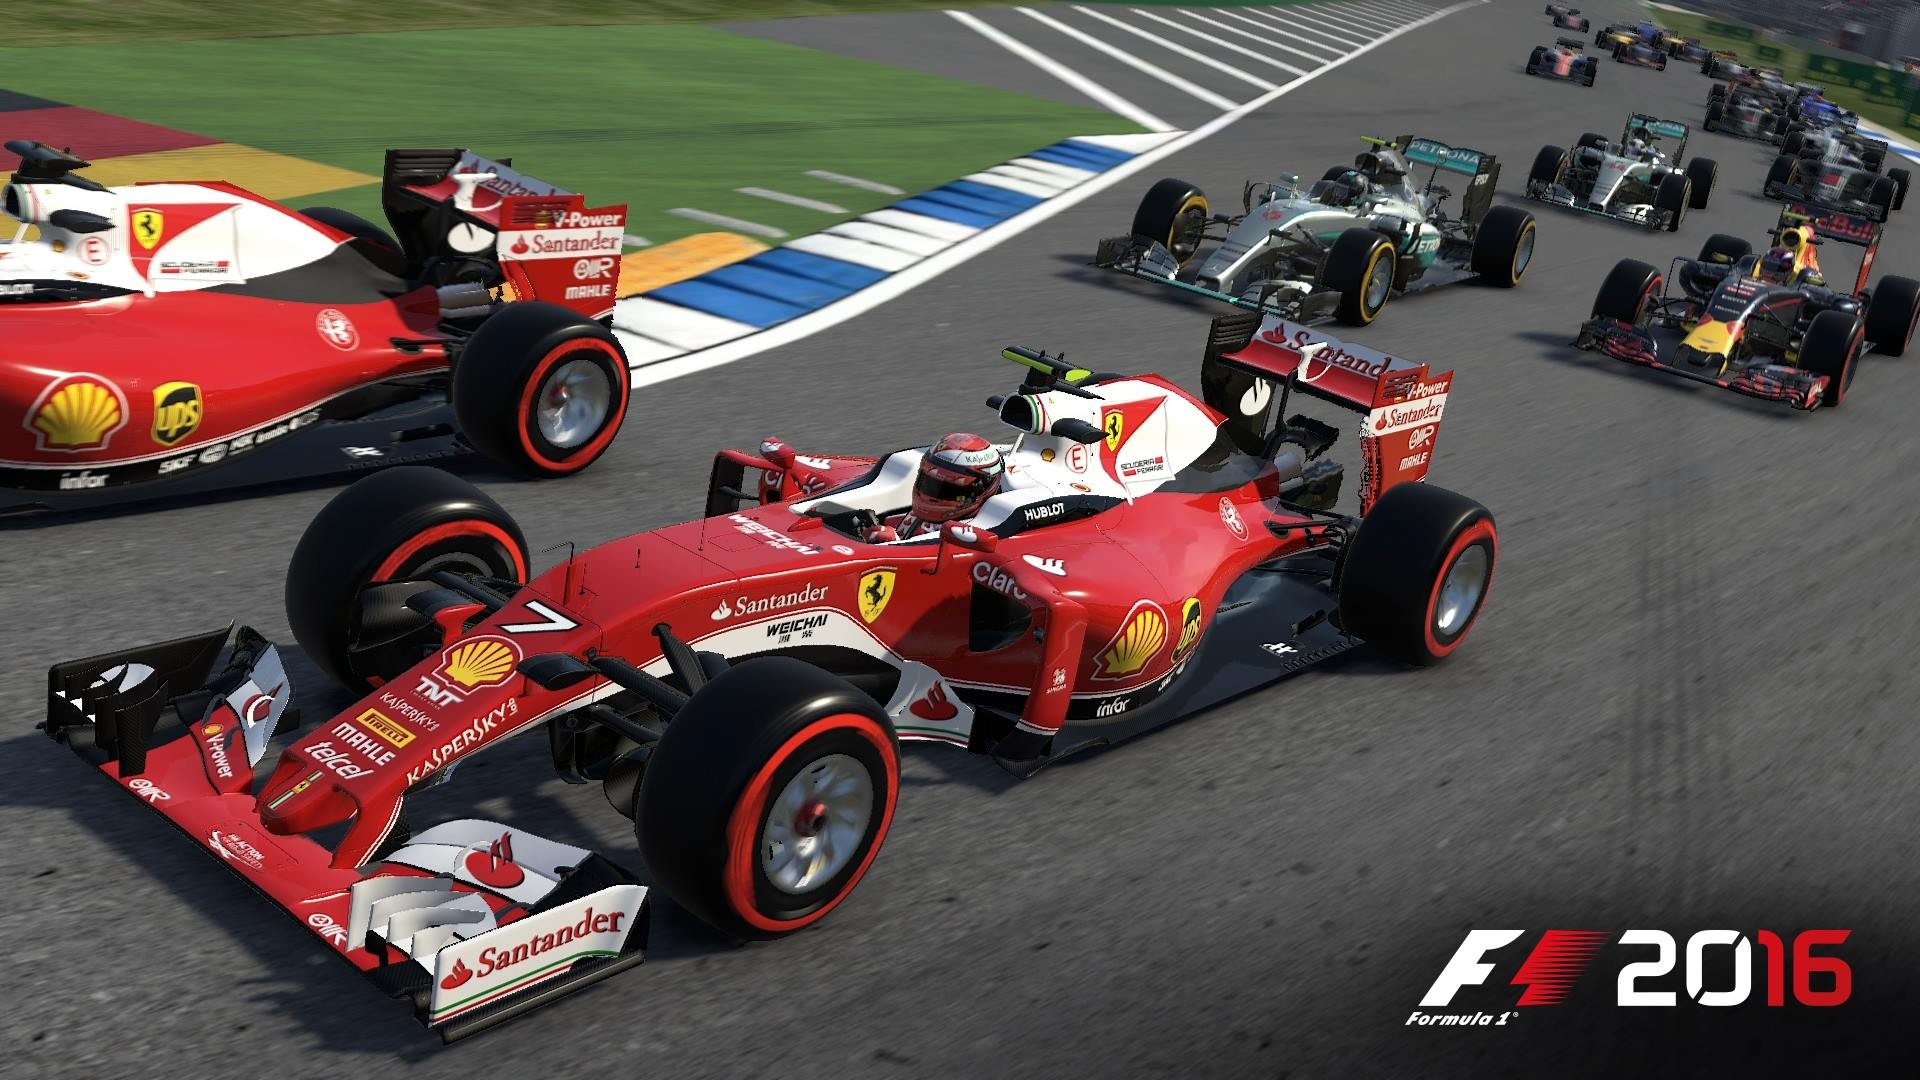 f1 2016 patch available now for playstation 4 xbox one pc operation sports. Black Bedroom Furniture Sets. Home Design Ideas